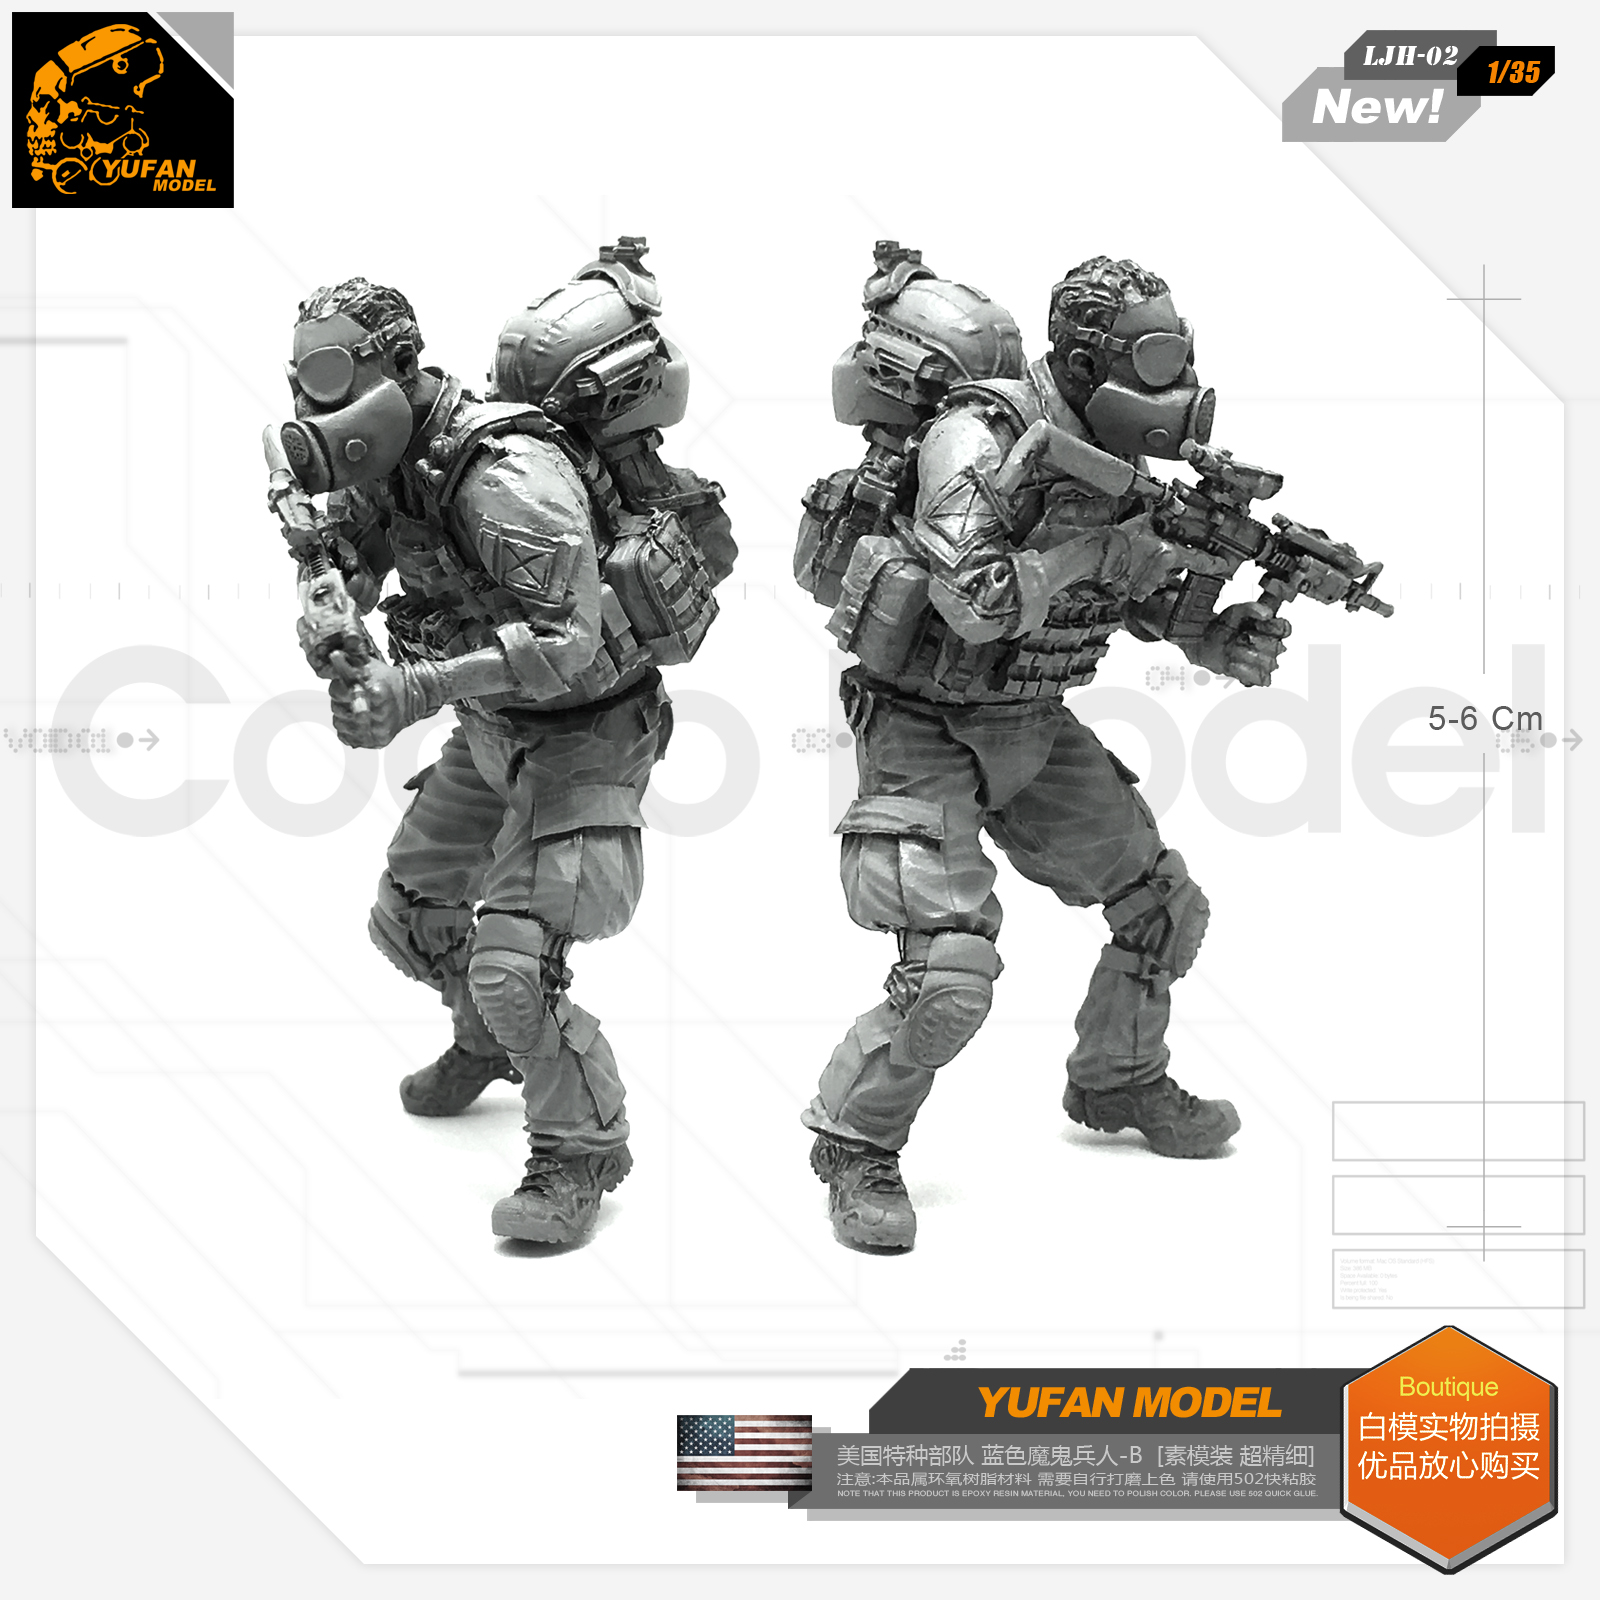 US $9 01 18% OFF|1/35 American Special Forces Man Blue Devil Soldier B  Resin Model LJH 02-in Model Building Kits from Toys & Hobbies on  Aliexpress com